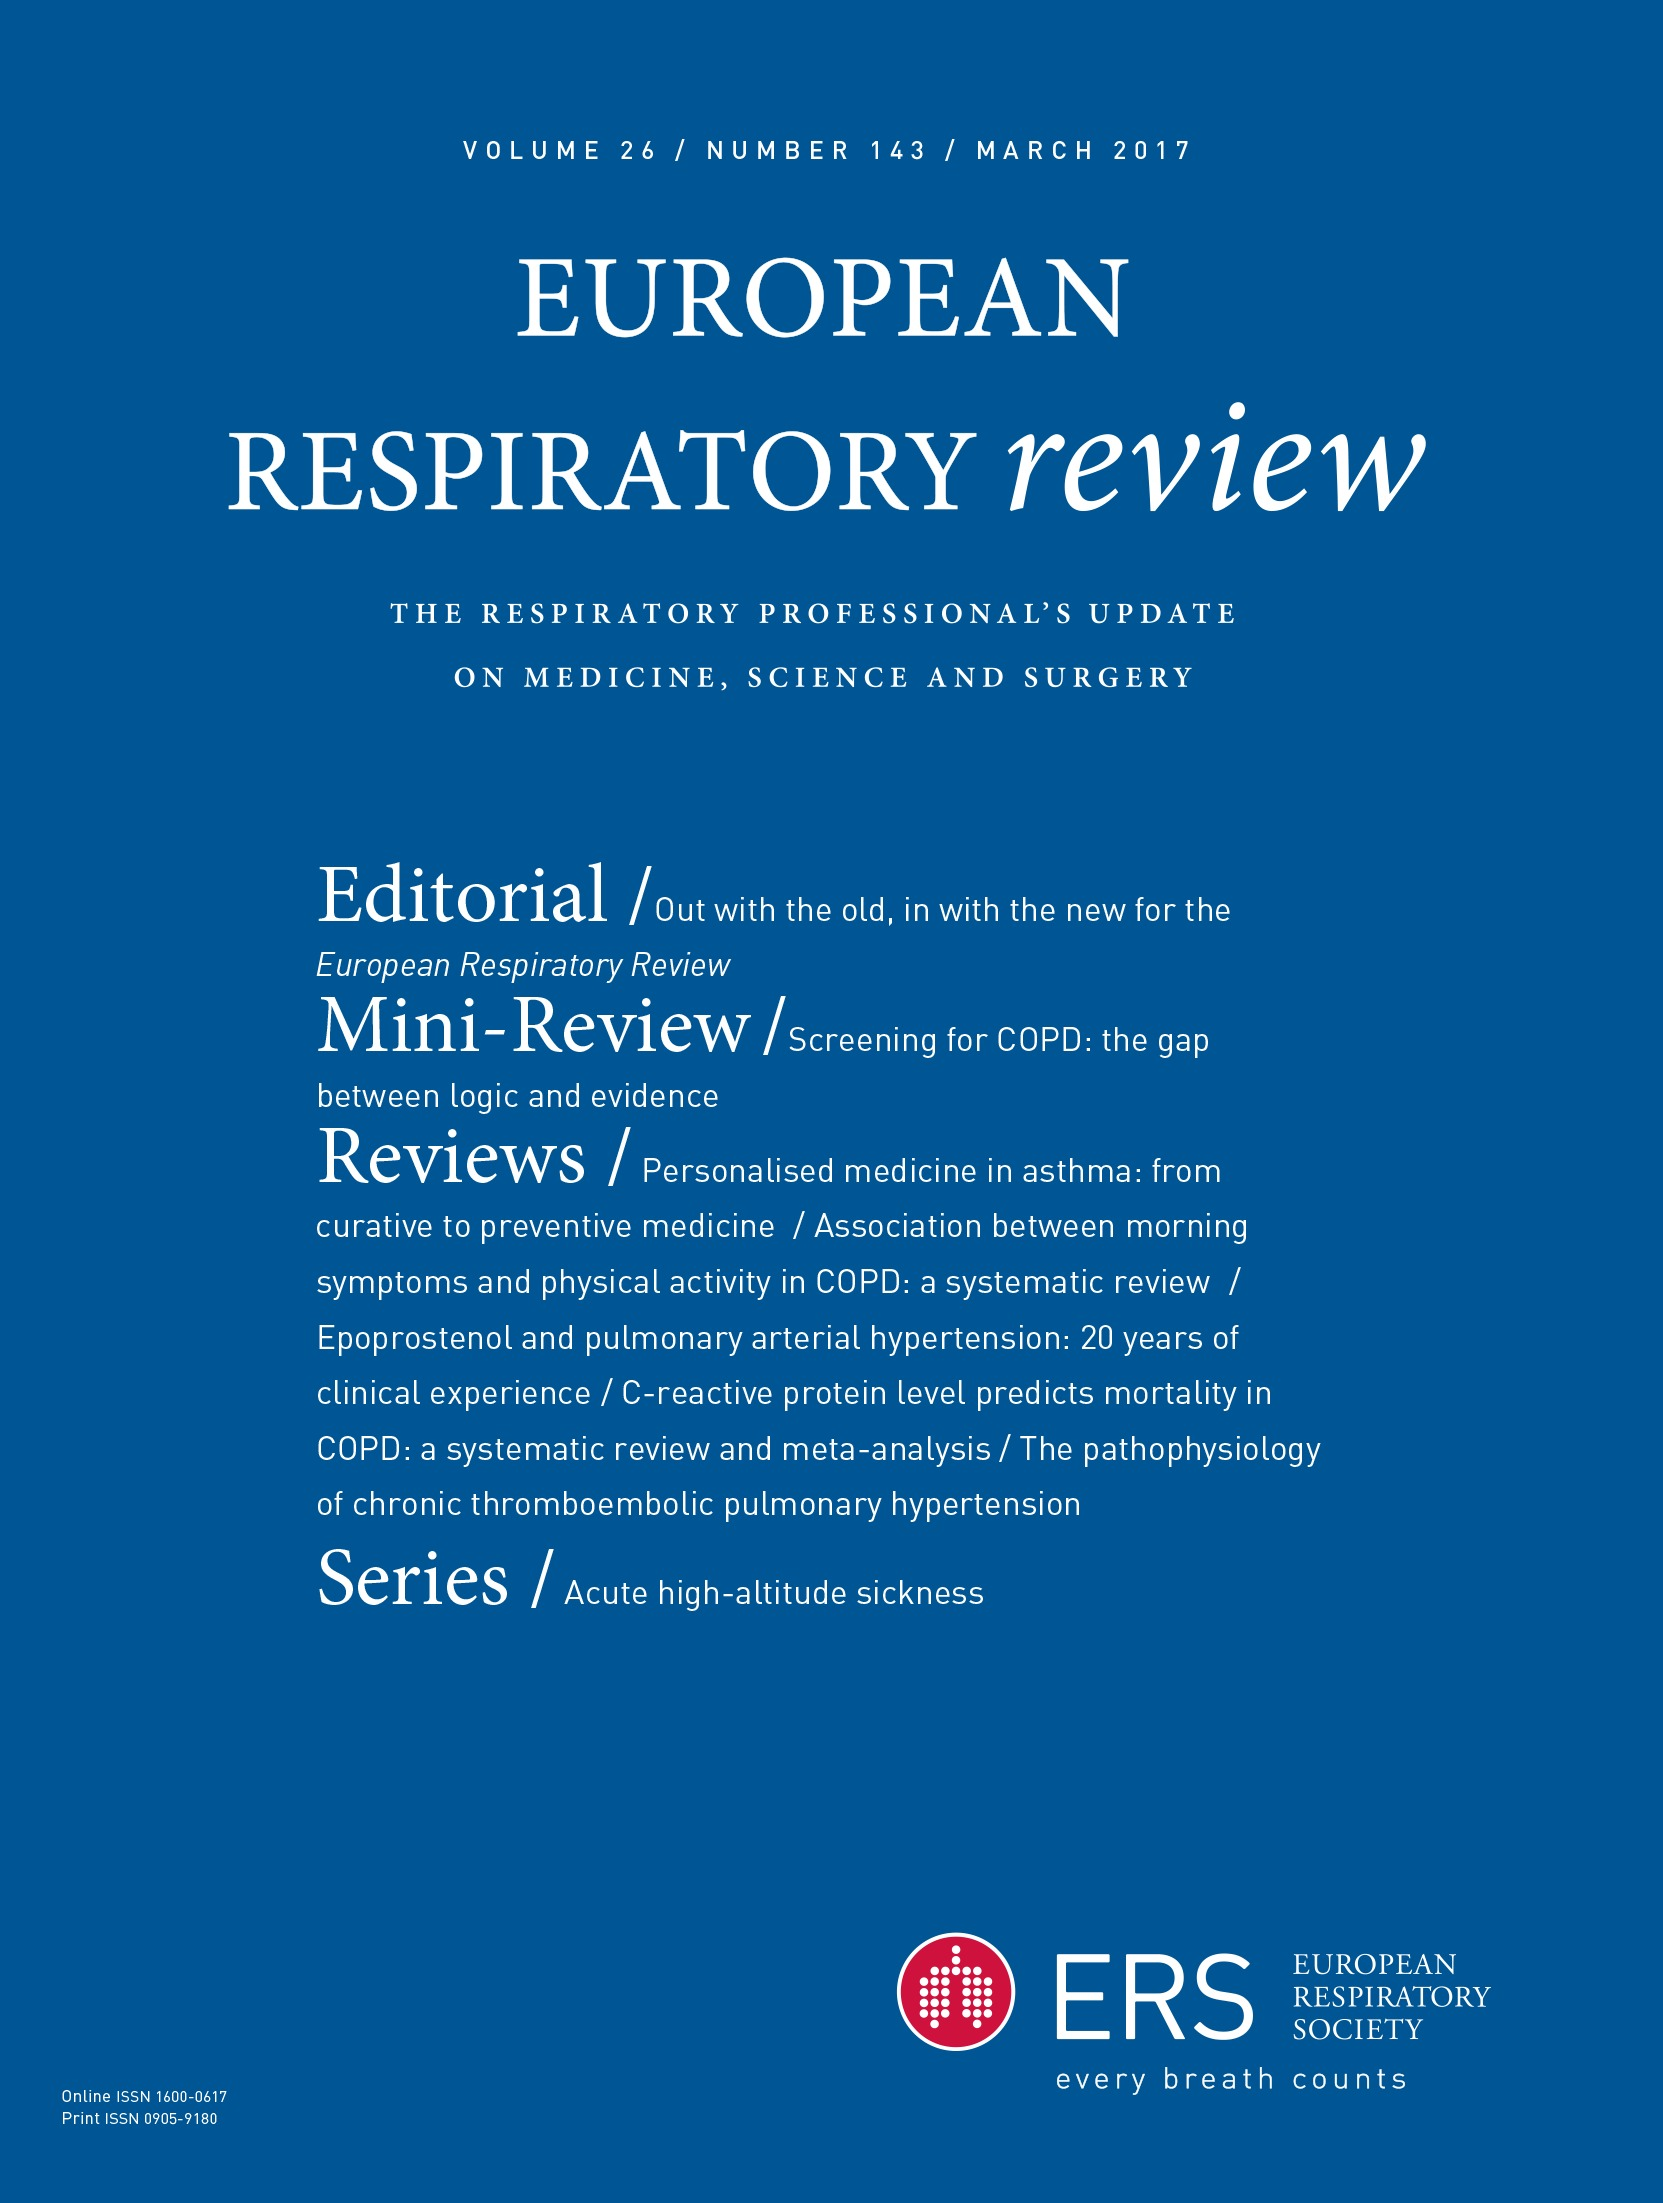 LABA/LAMA combination in COPD: a meta-analysis on the duration of ...